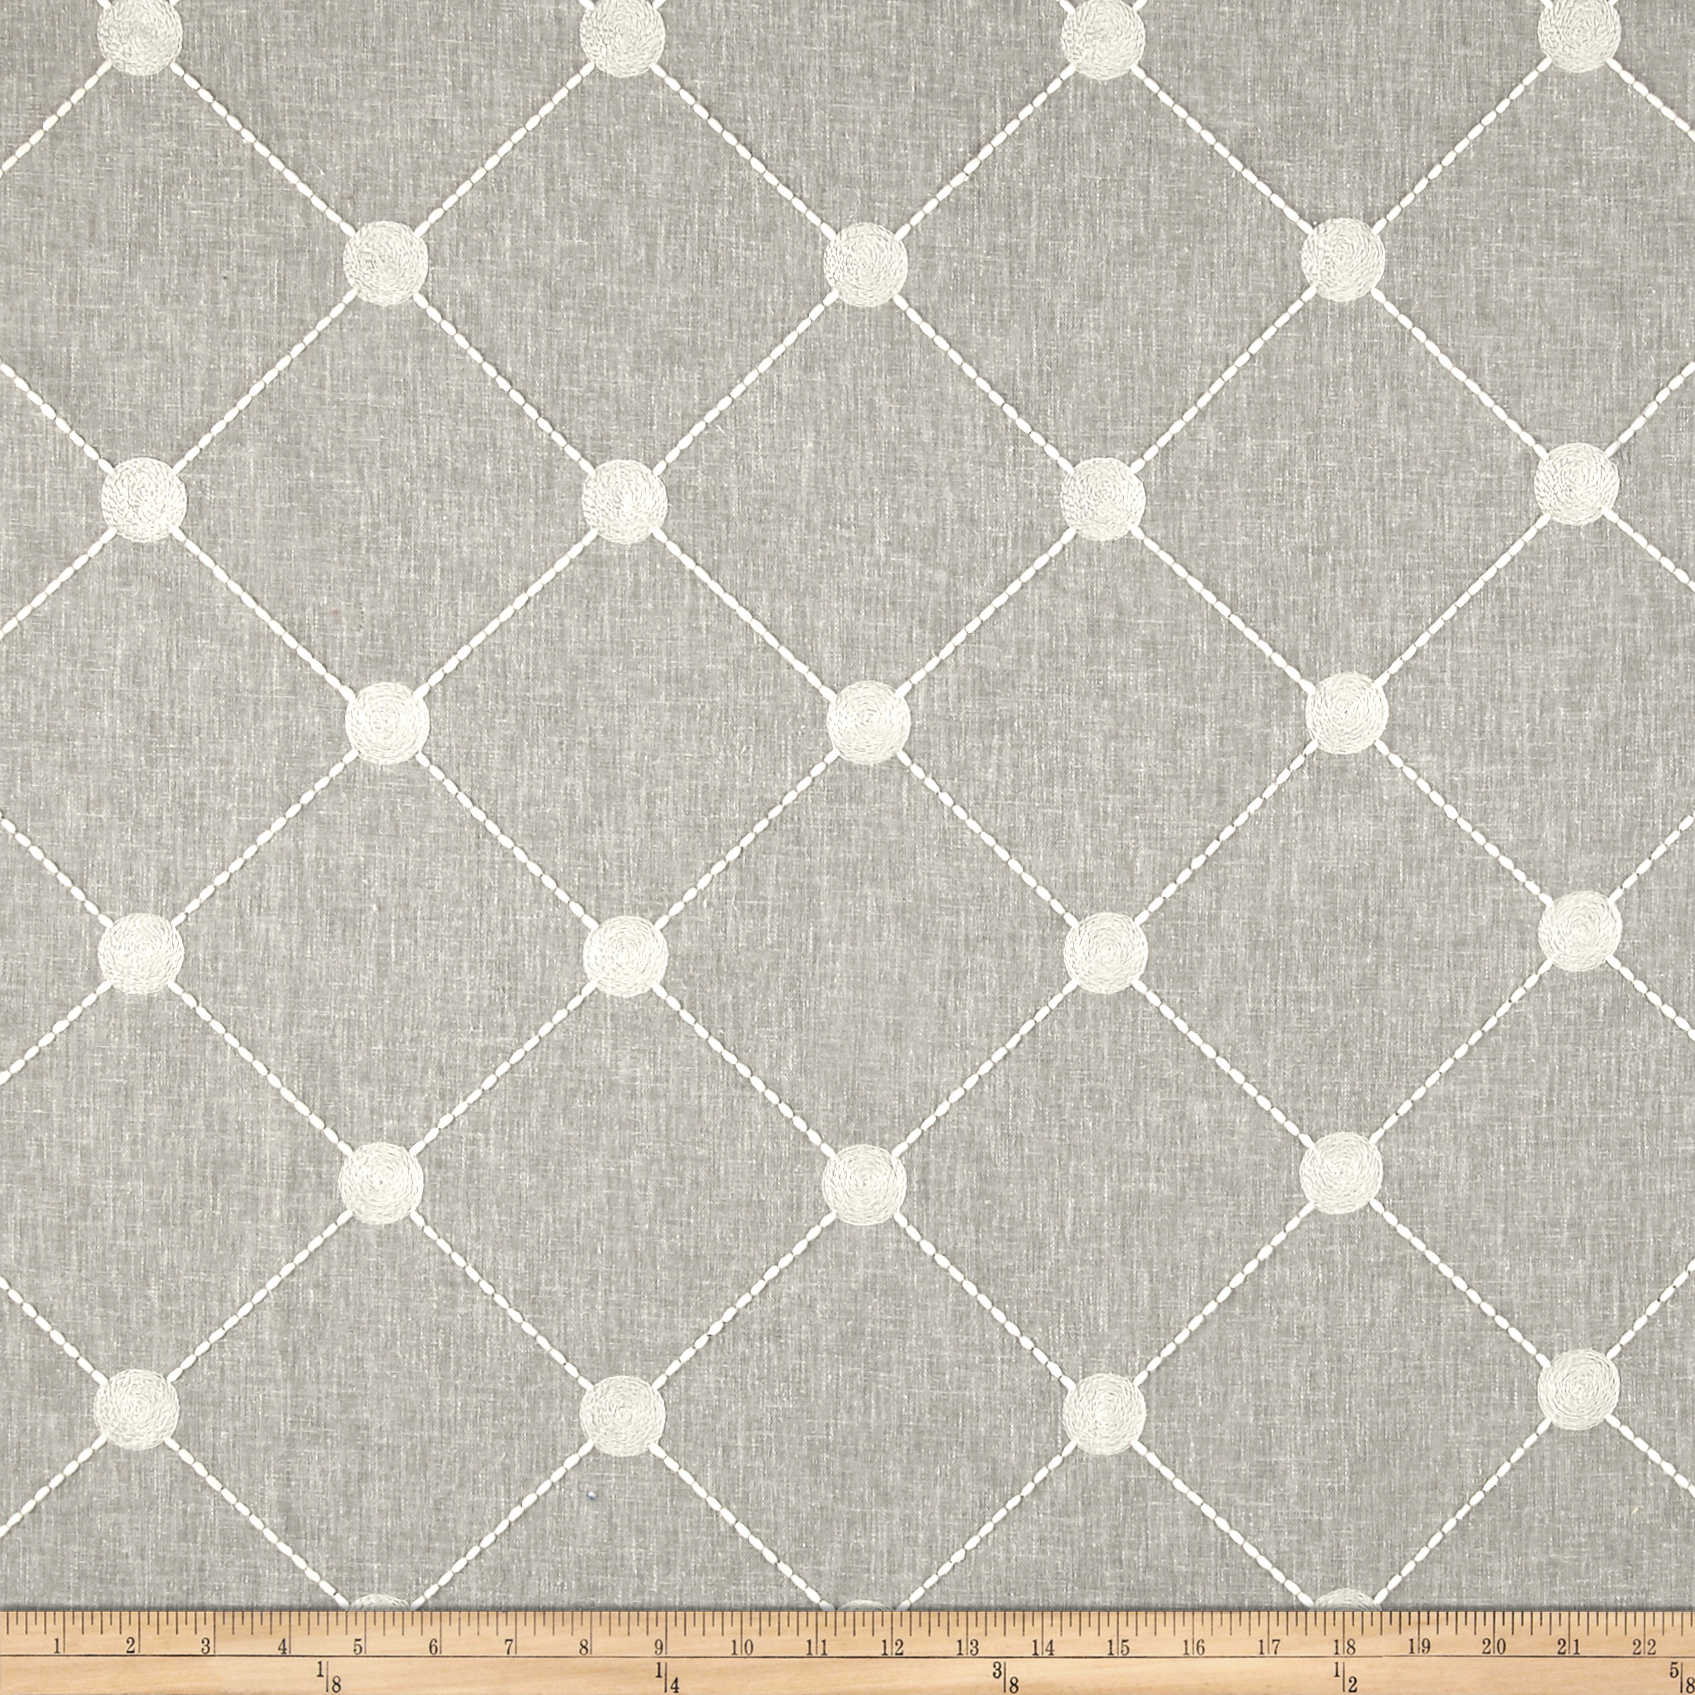 Kelly Ripa Home Fanfare Emb Cloud Fabric by Waverly in USA